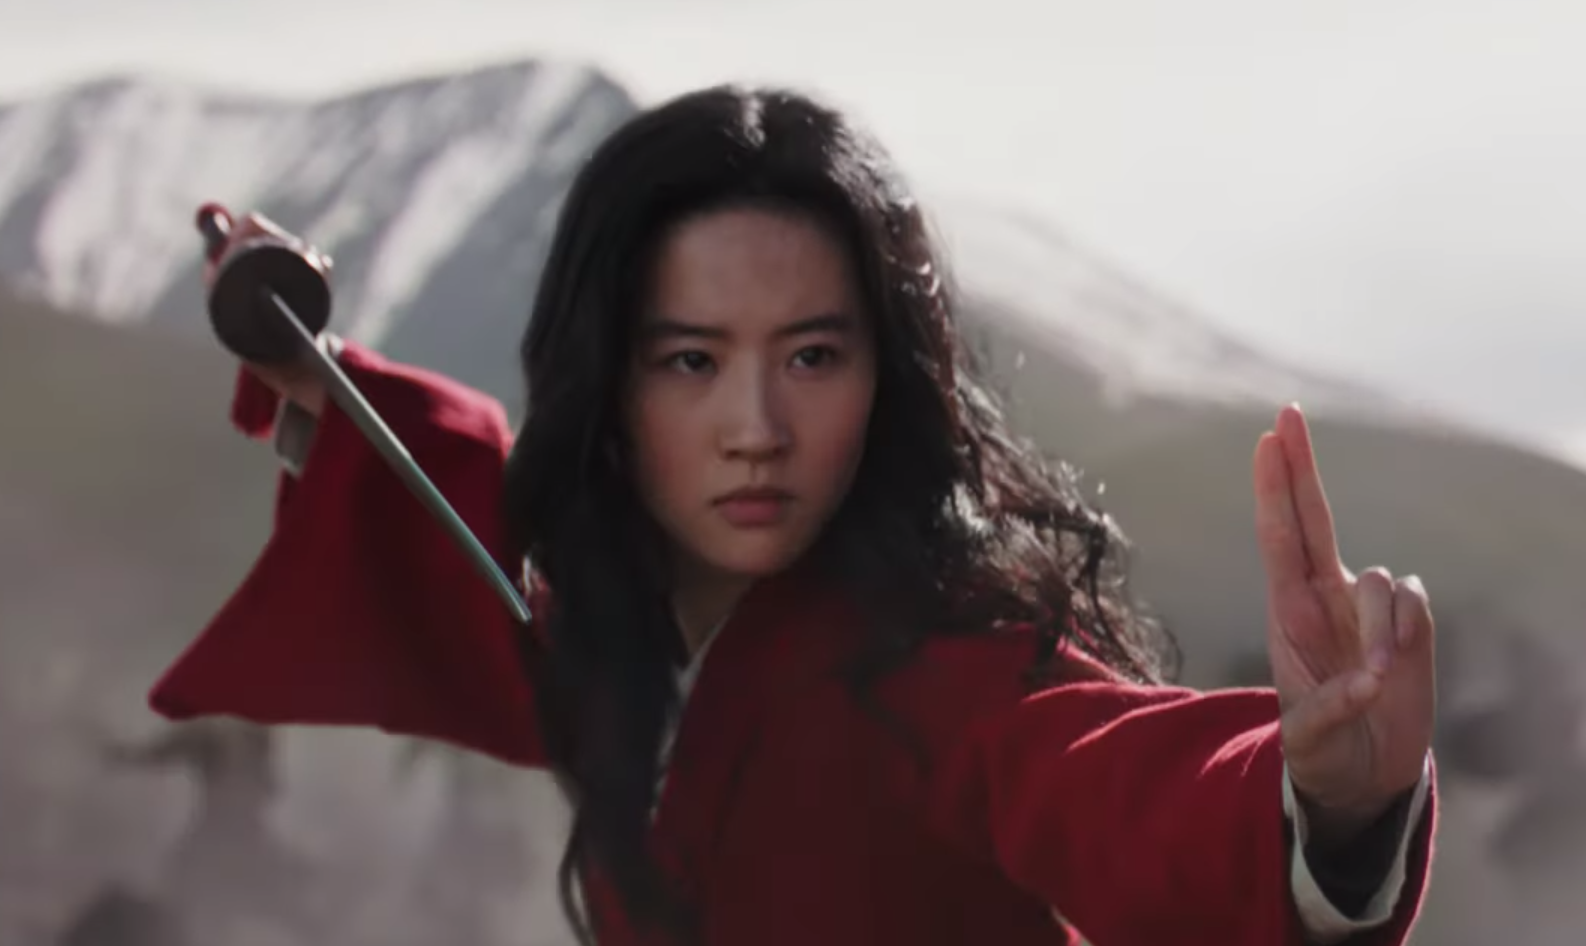 The Official Trailer For Disney's 'Mulan' Has Dropped And It Looks Stellar